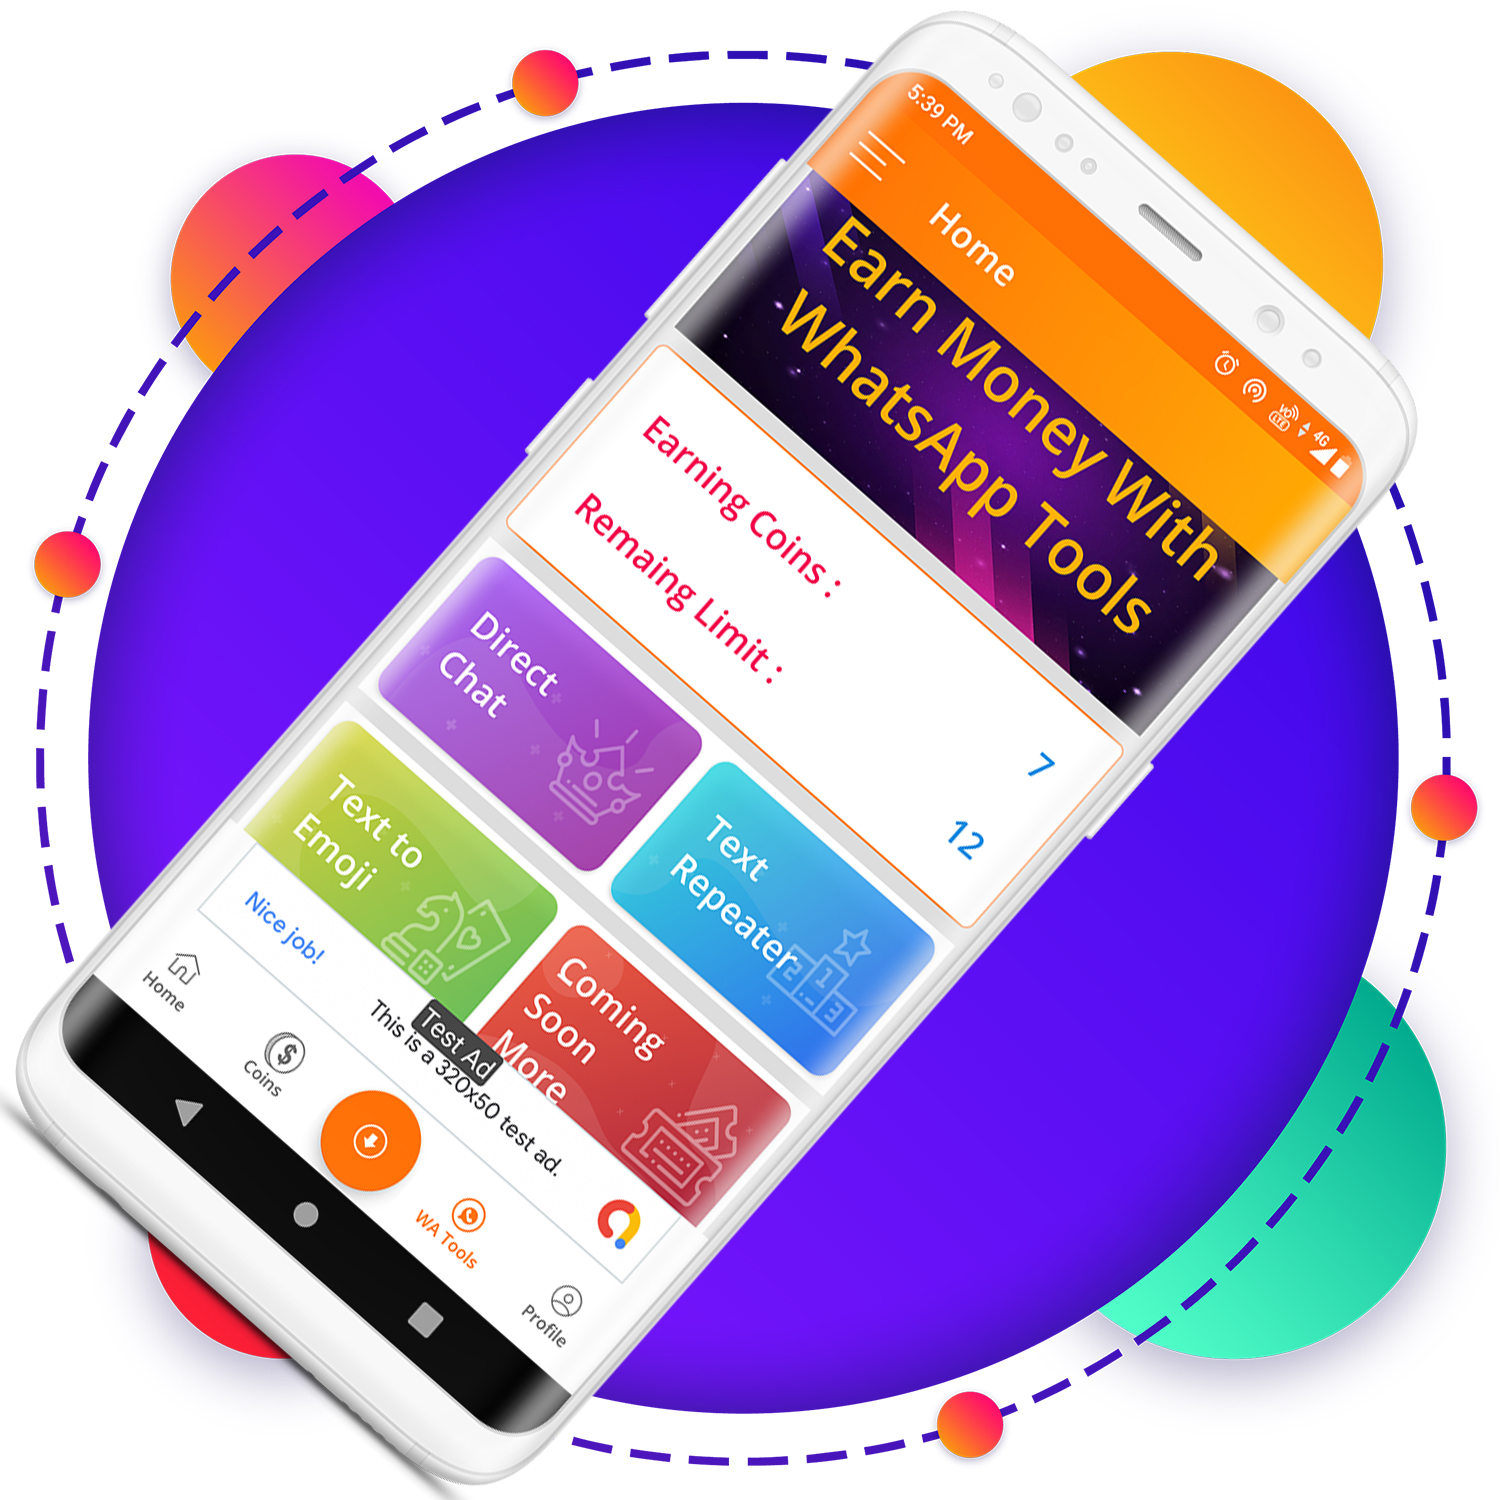 QuickCash All In One Money Earning Android App + Games + WhatsApp Tools + Earning System Admin Panel - 11